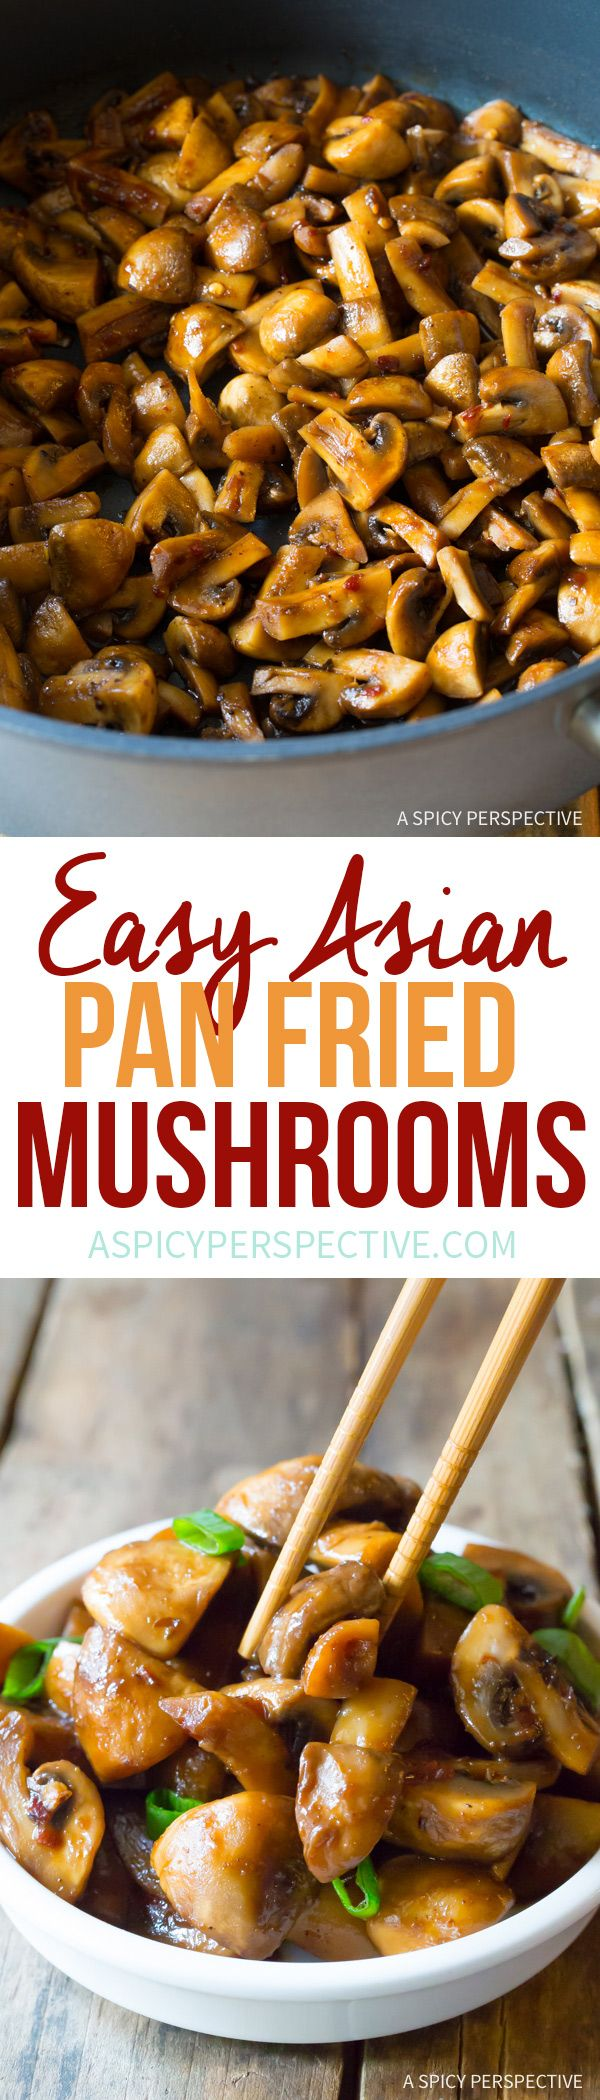 Perfect Asian Stir Fried Mushrooms Recipe